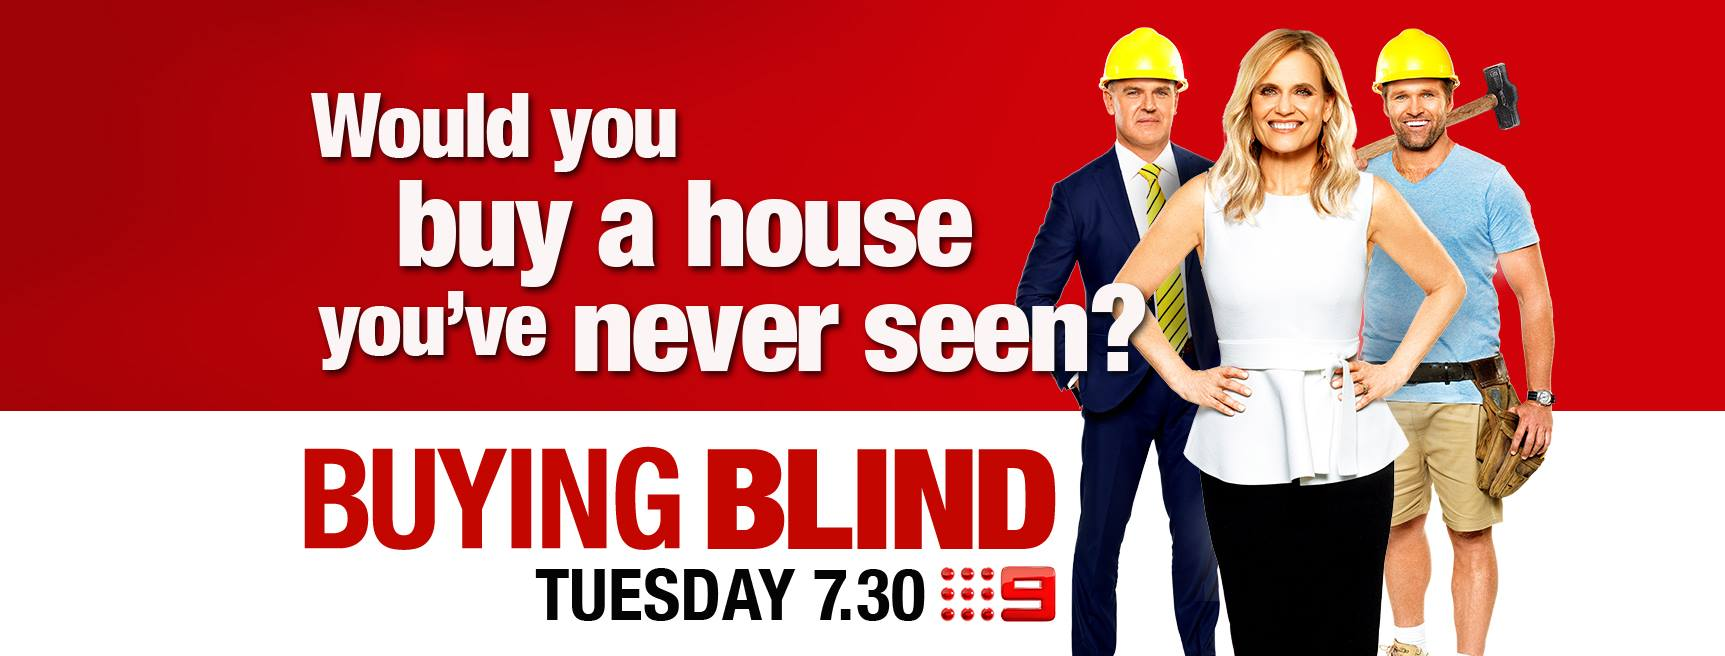 Buying Blind Tuesday 7.30